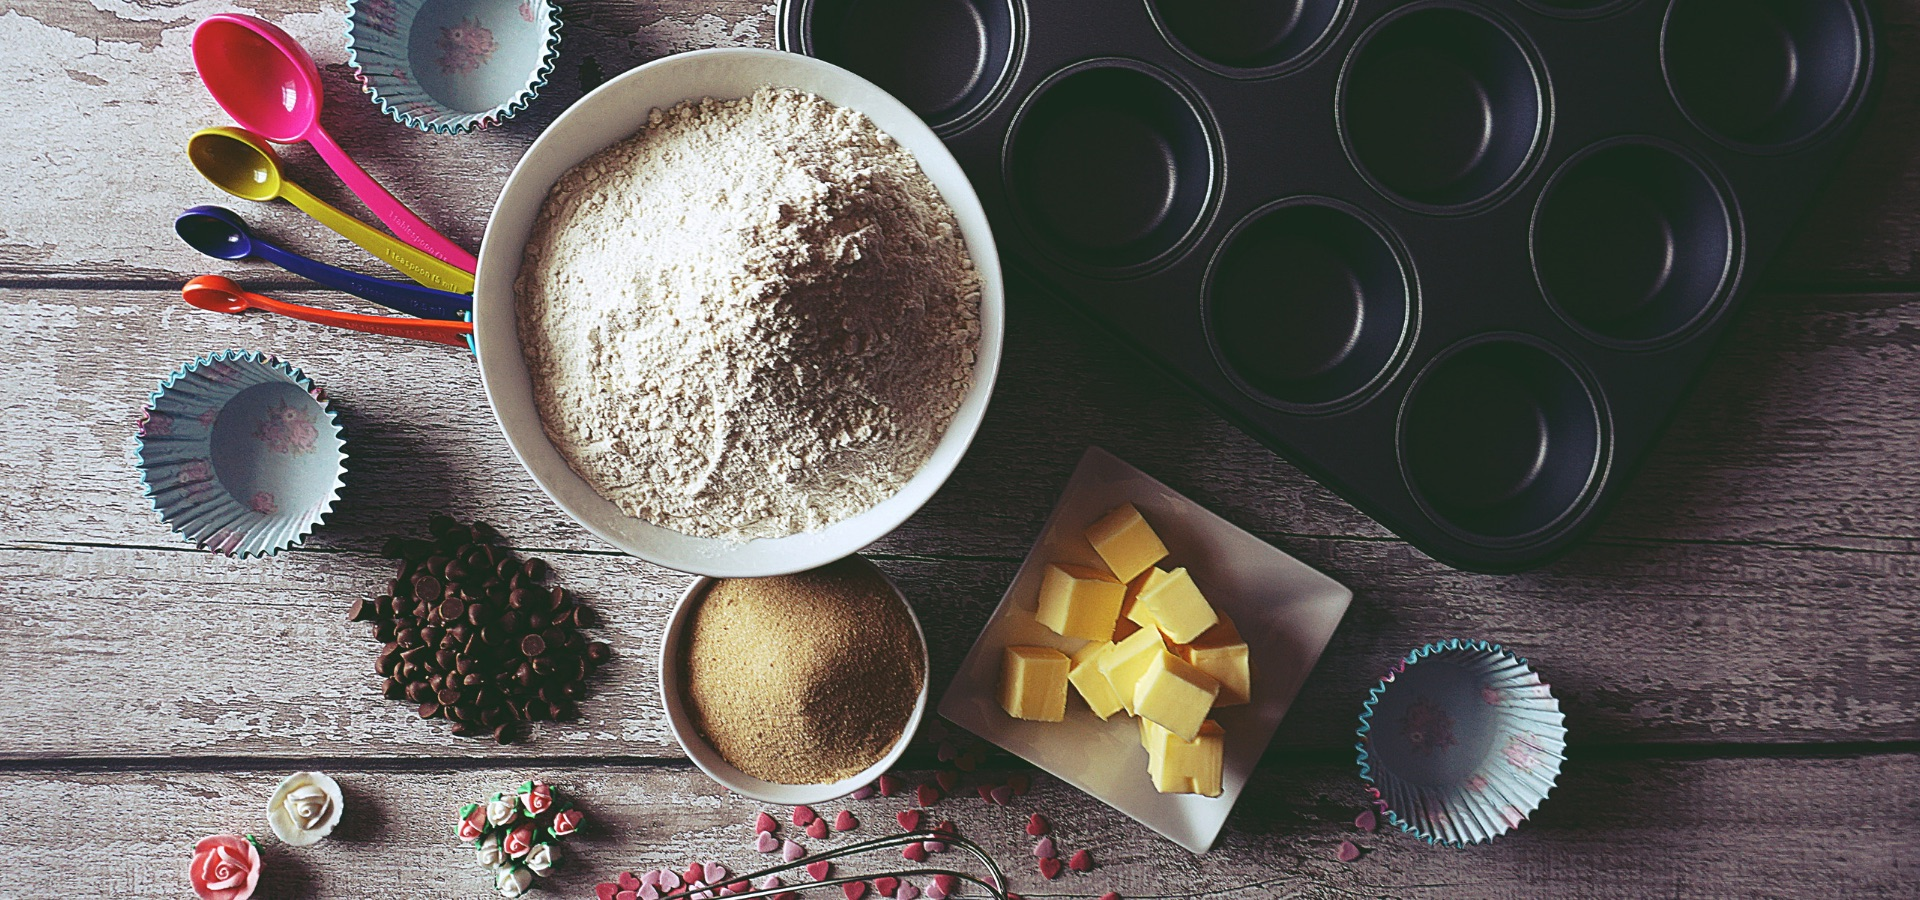 The Importance Of Baking